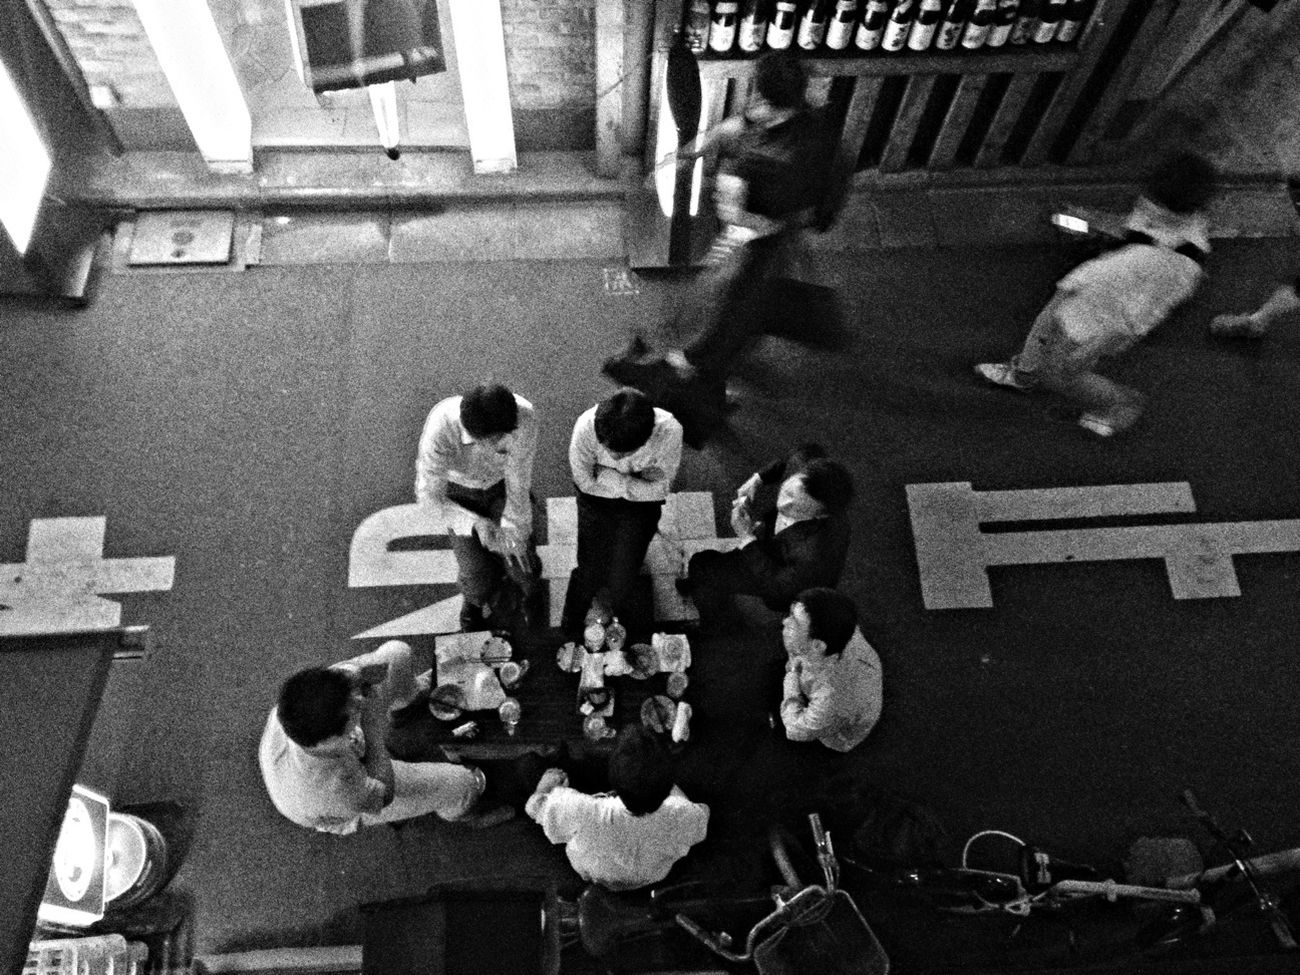 Streetphotography Blackandwhite Just Some Random Shot People In The Streets